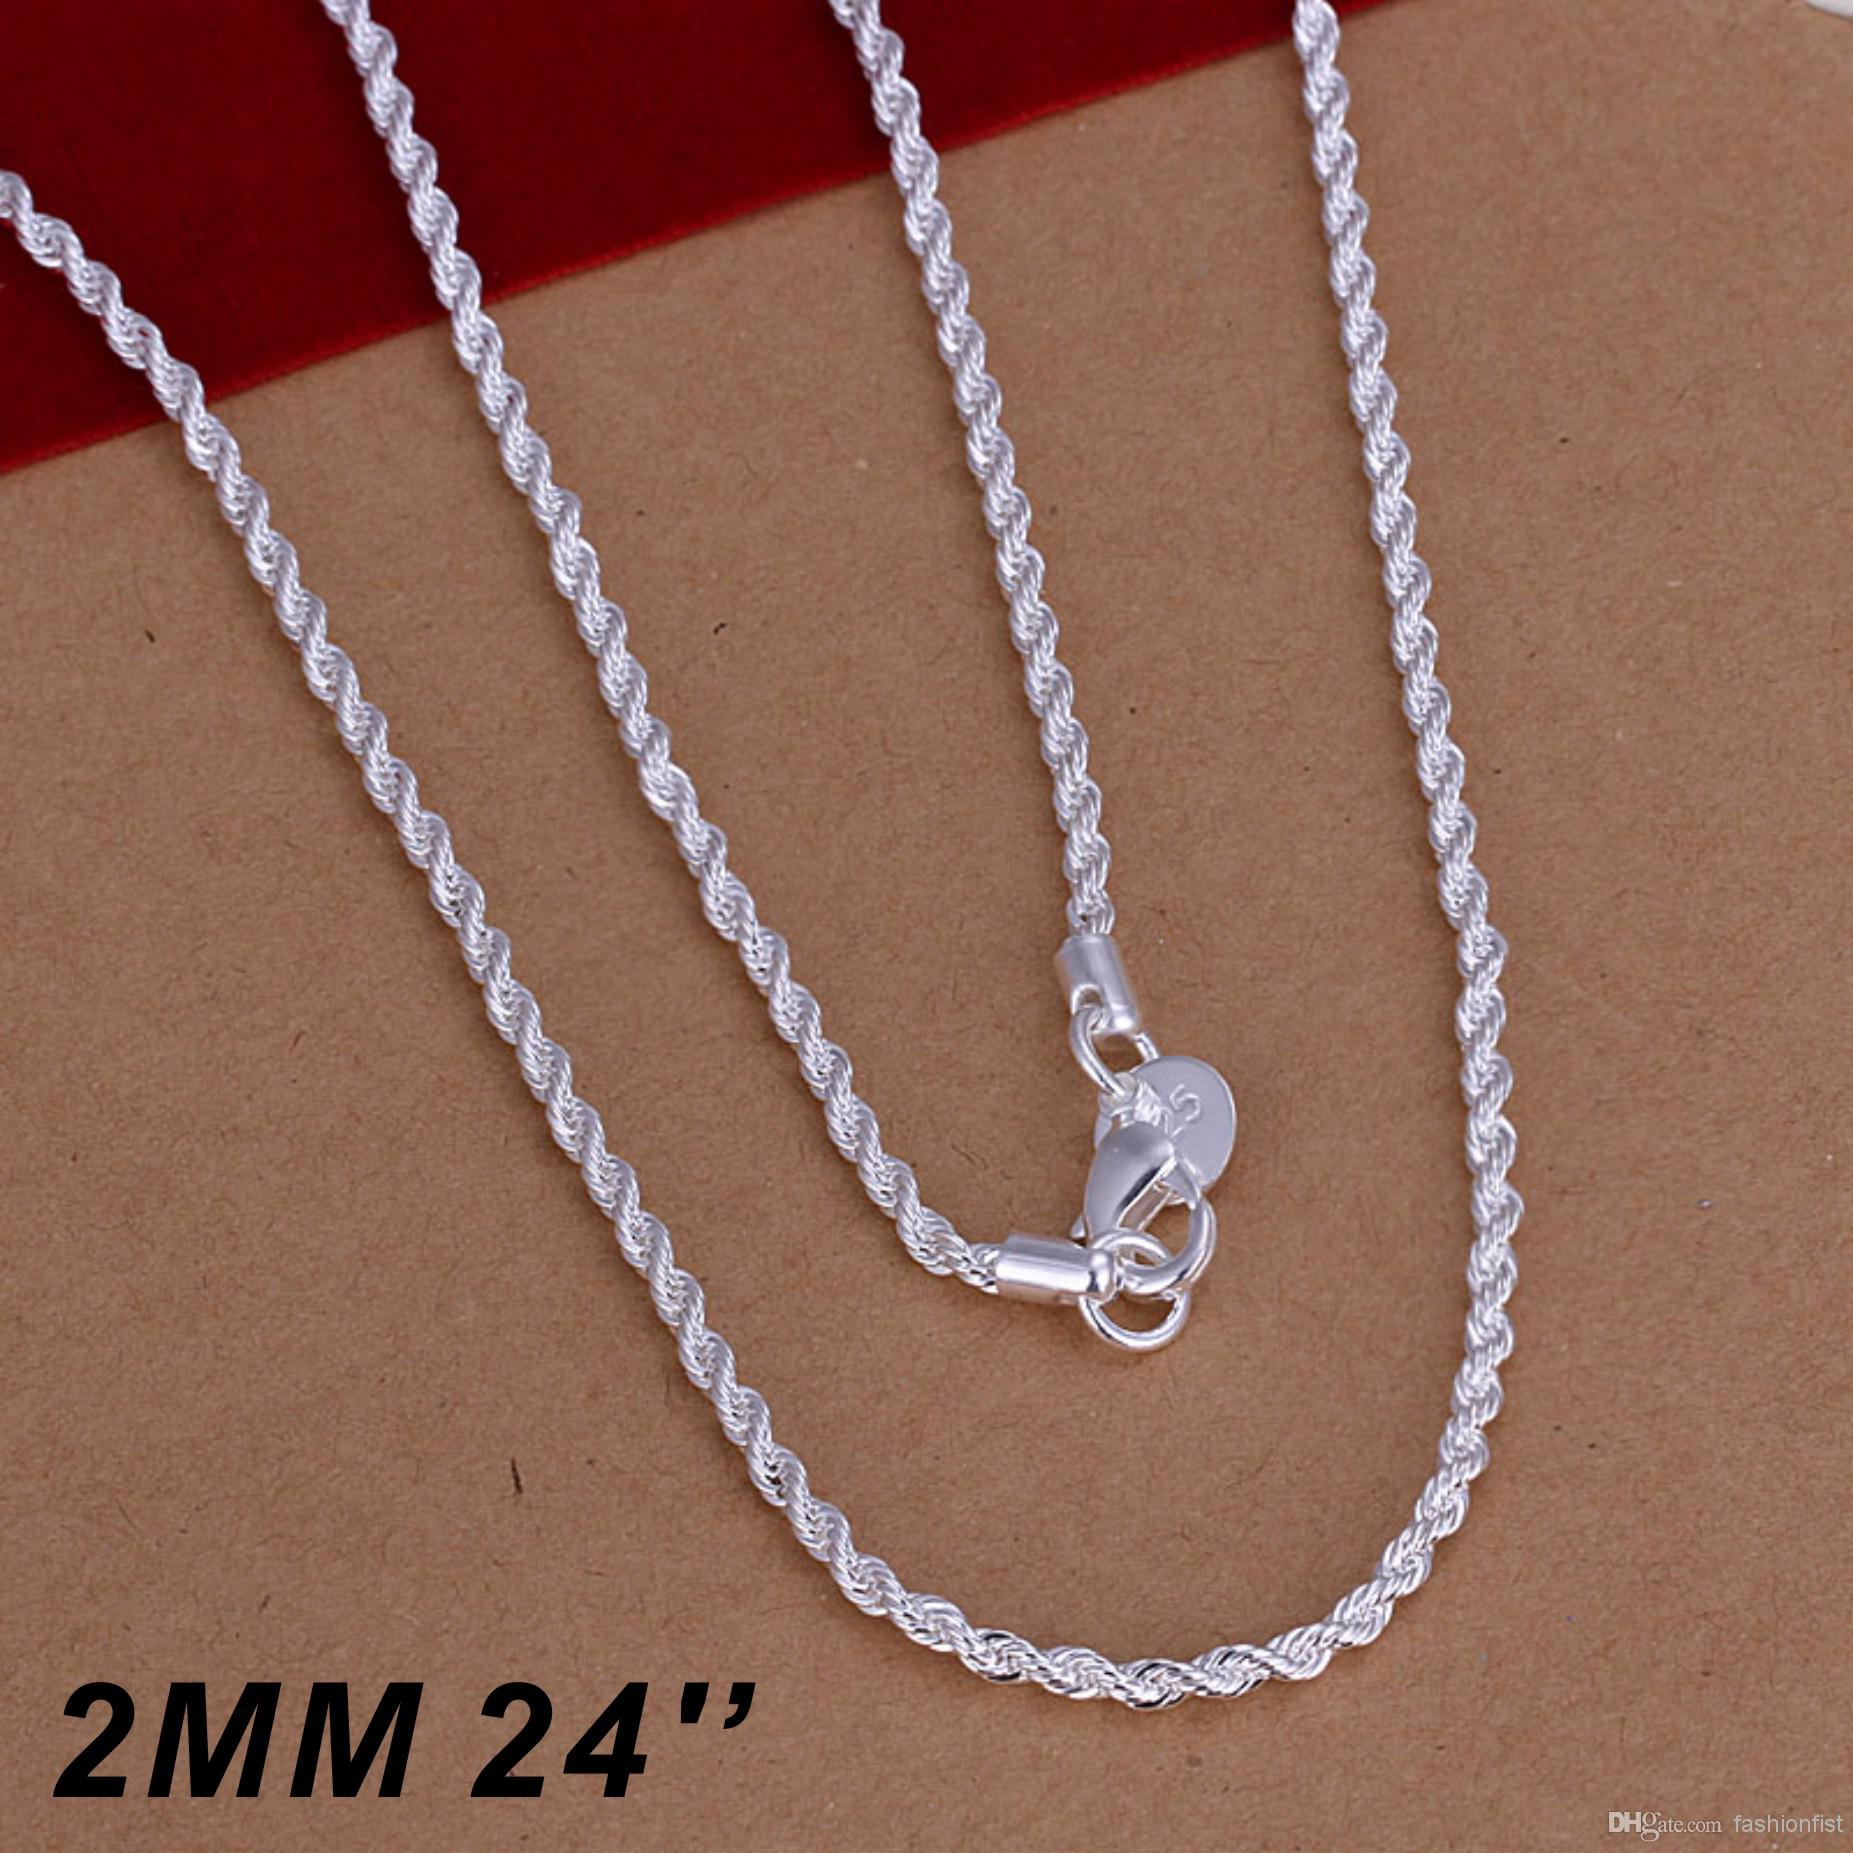 Top Quality 925 Sterling Silver Men Women Twist ROPE Chain Necklaces 2MM 16inch/18inch/20inch/22inch/24inch